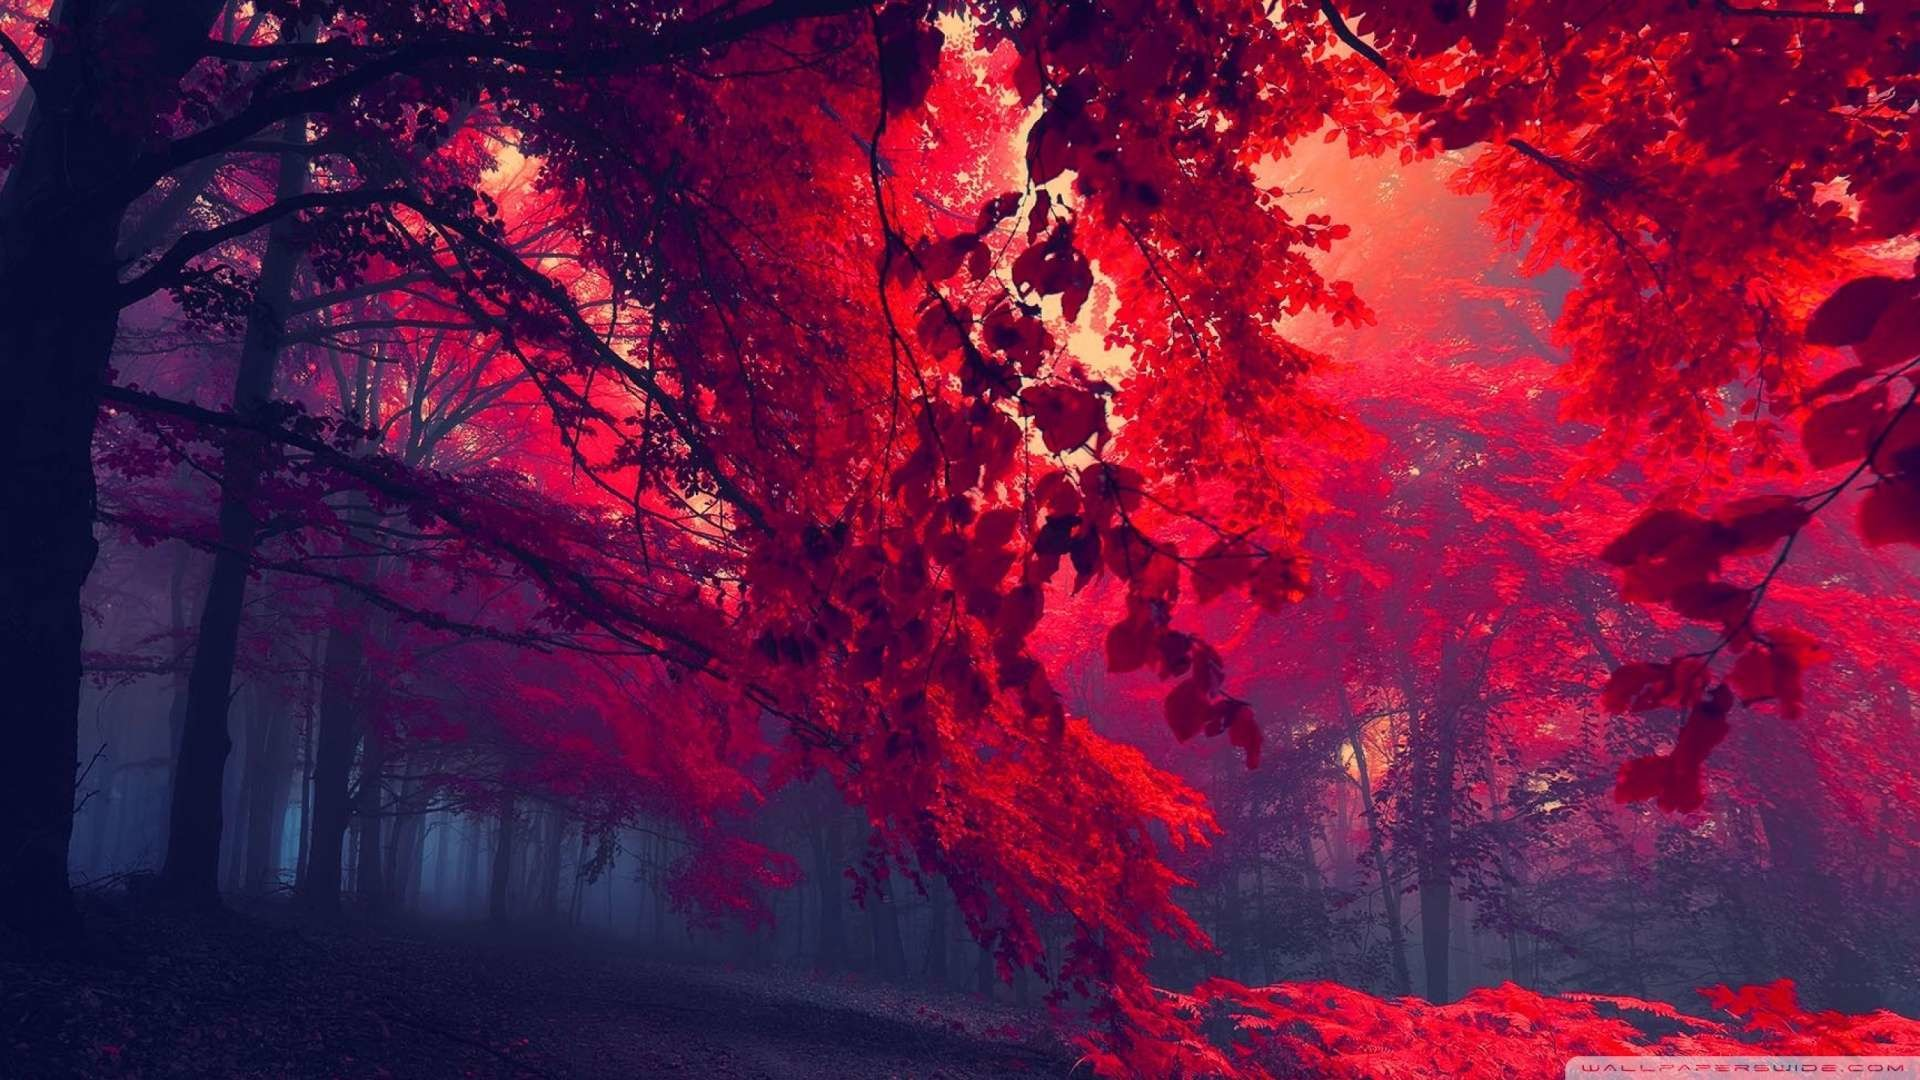 Red HD Wallpapers 1080p 73+ images